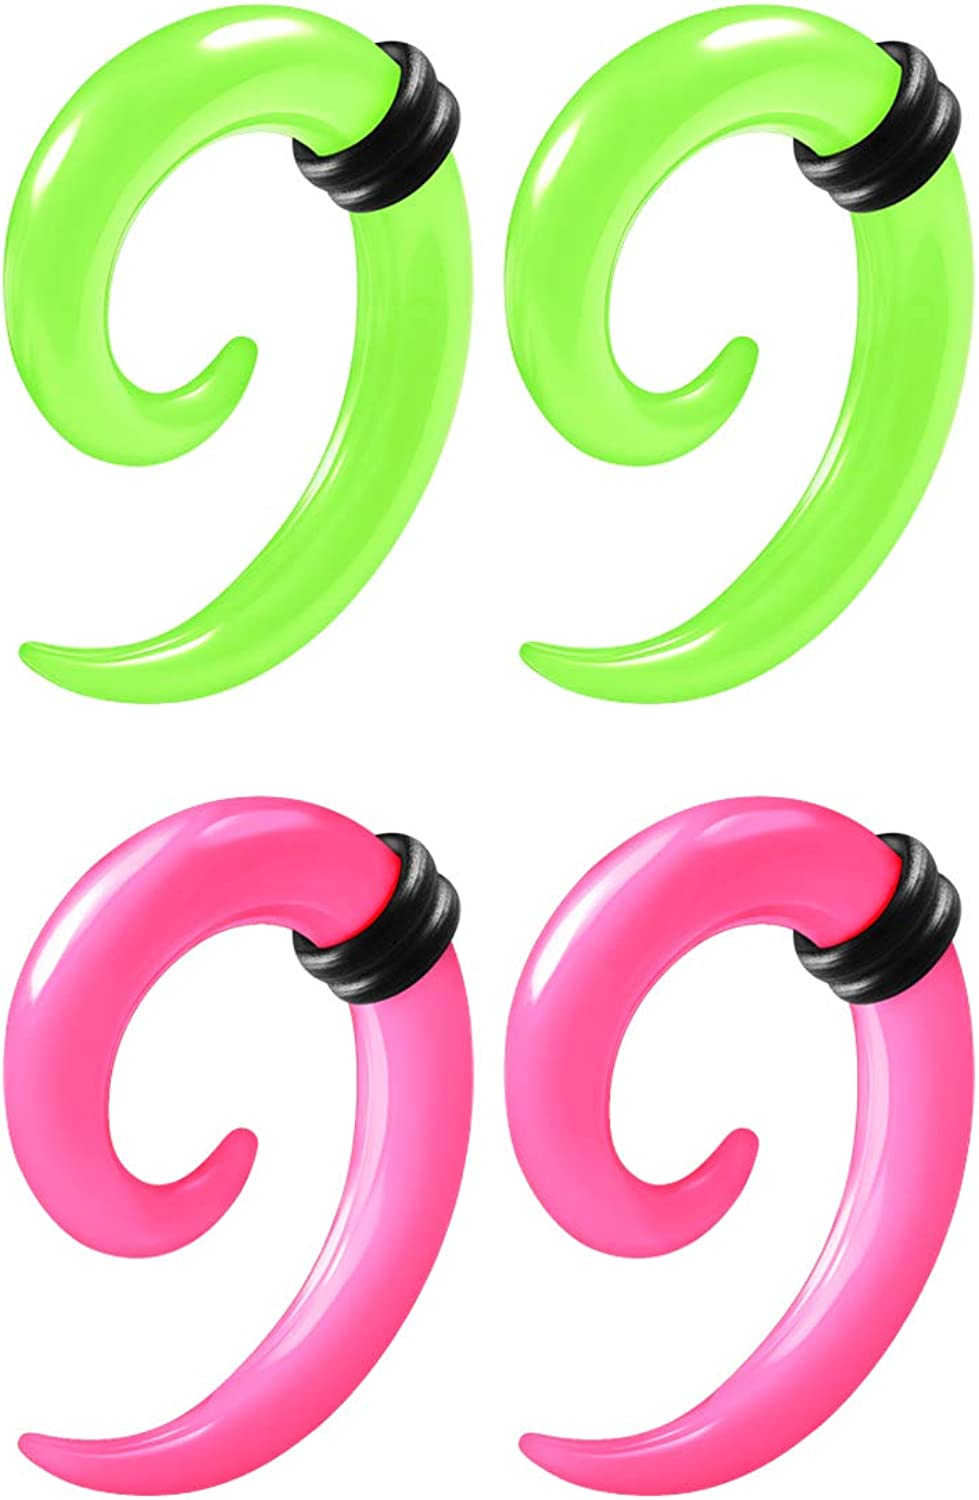 2 Pairs Green Pink Acrylic Spiral Taper Expander Piercing Jewelry Ear Stretching Earring Coil O-Rings Gauges Lobe Plugs